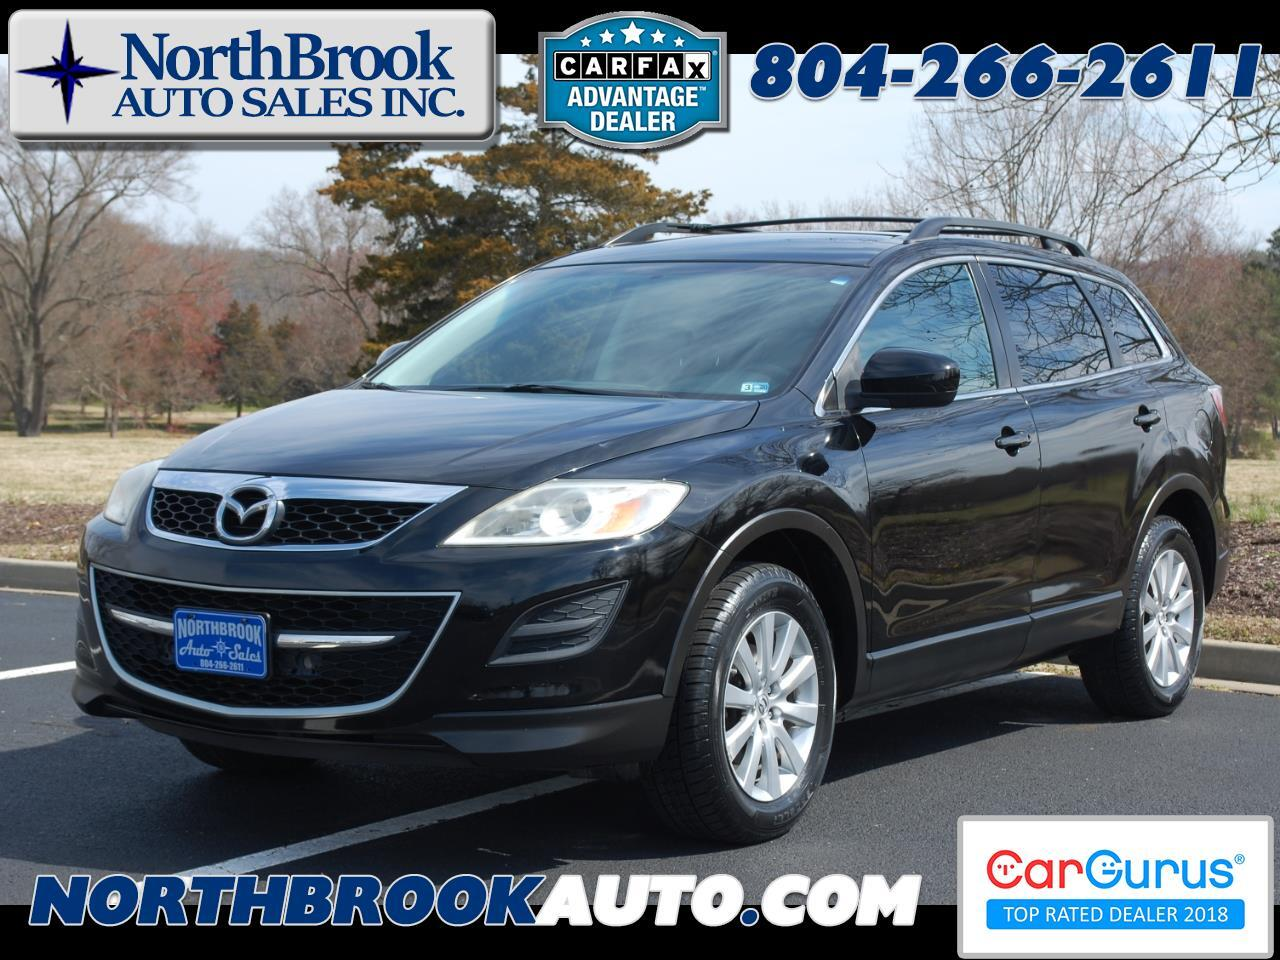 2010 Mazda CX-9 AWD 4dr Touring